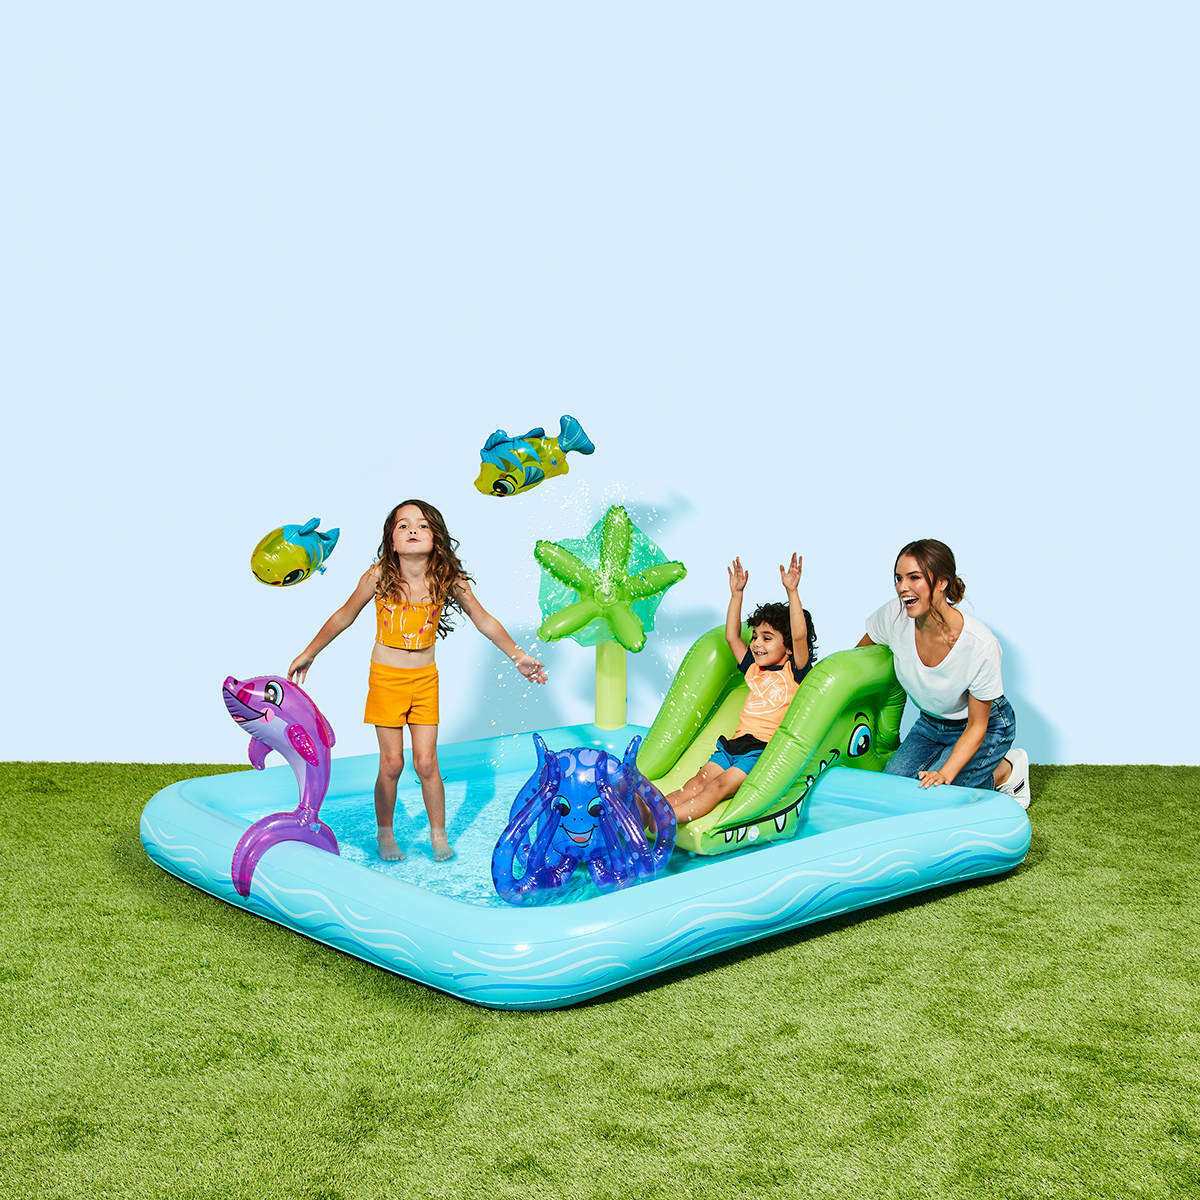 Inflatable Aquarium Play Pool,Removable slide with tie ropes & built-in grommets